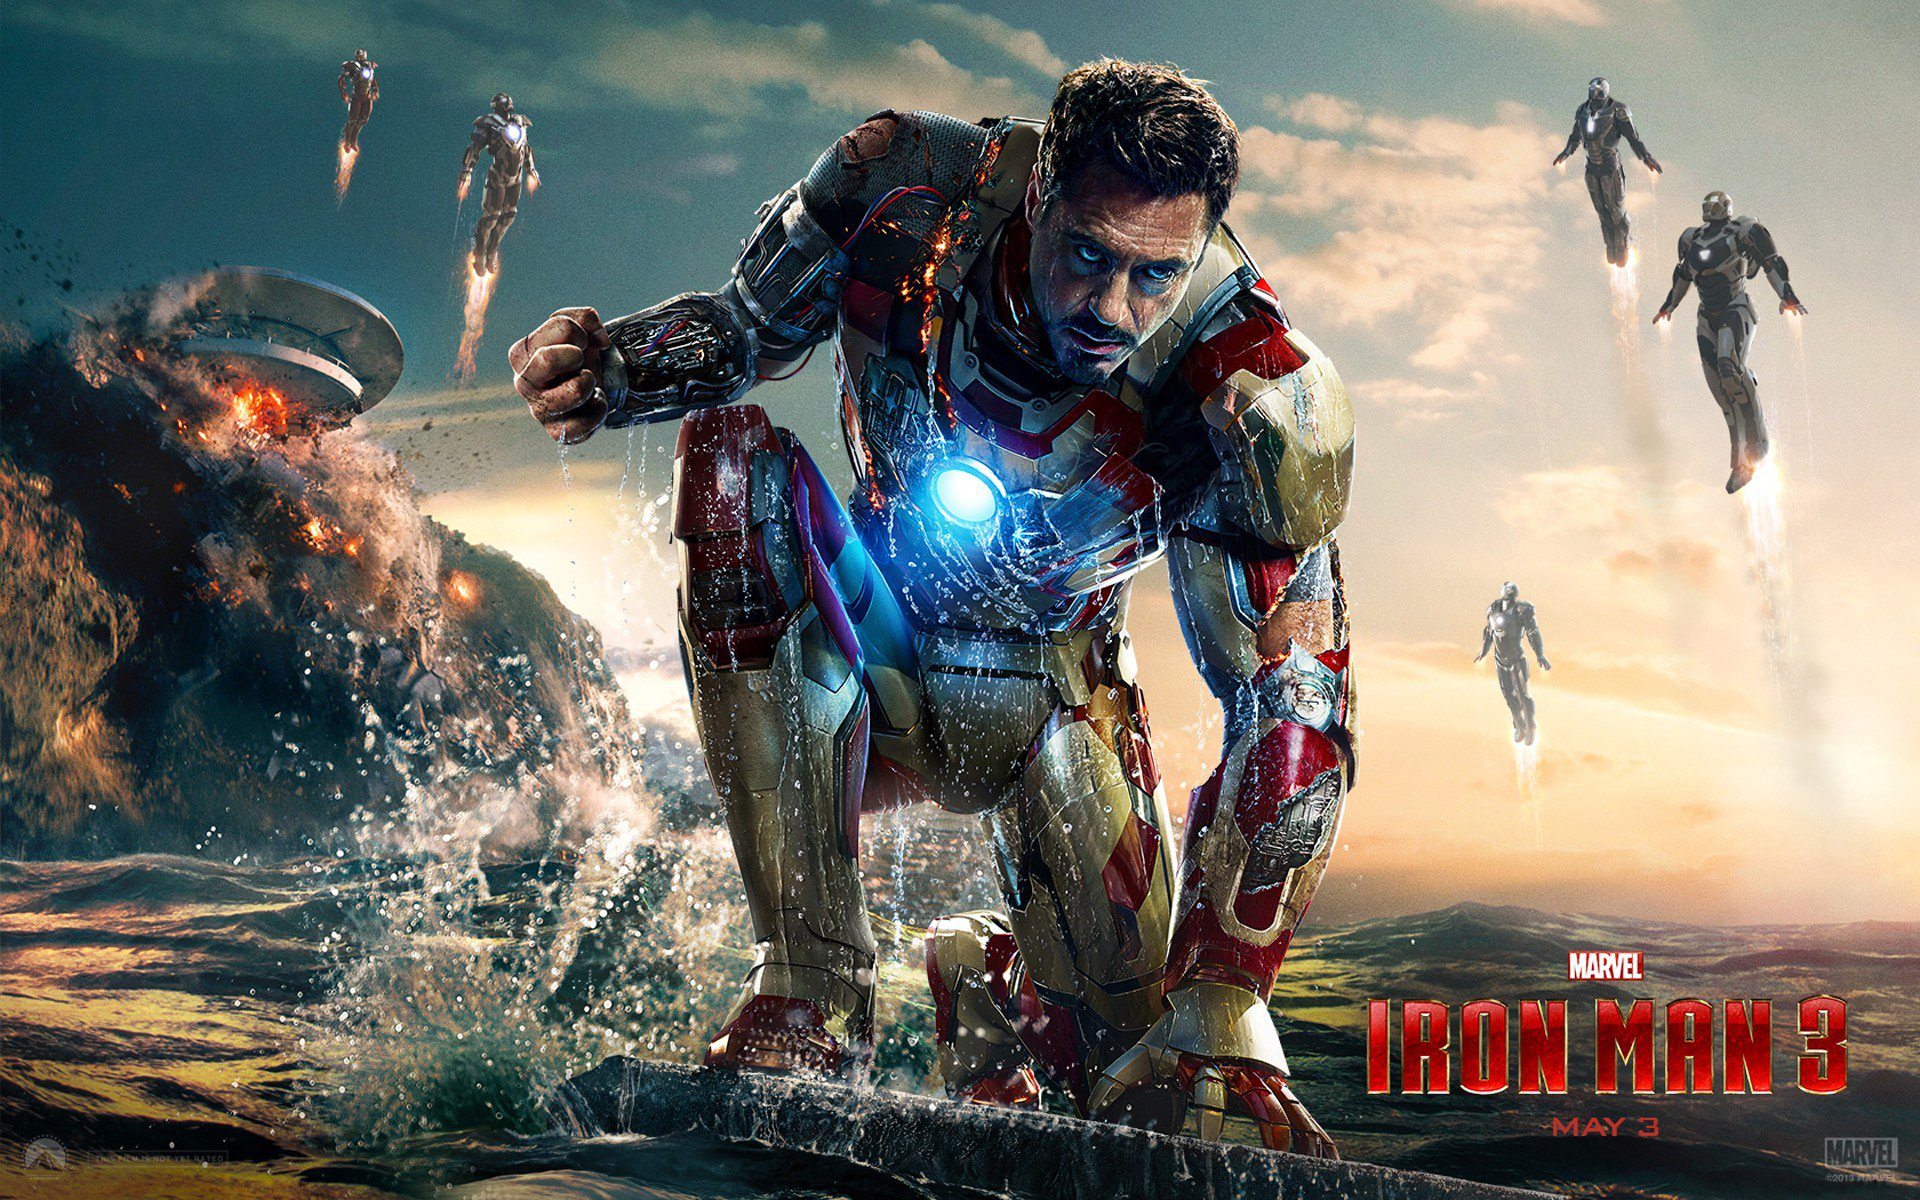 119 iron man 3 hd wallpapers | background images - wallpaper abyss